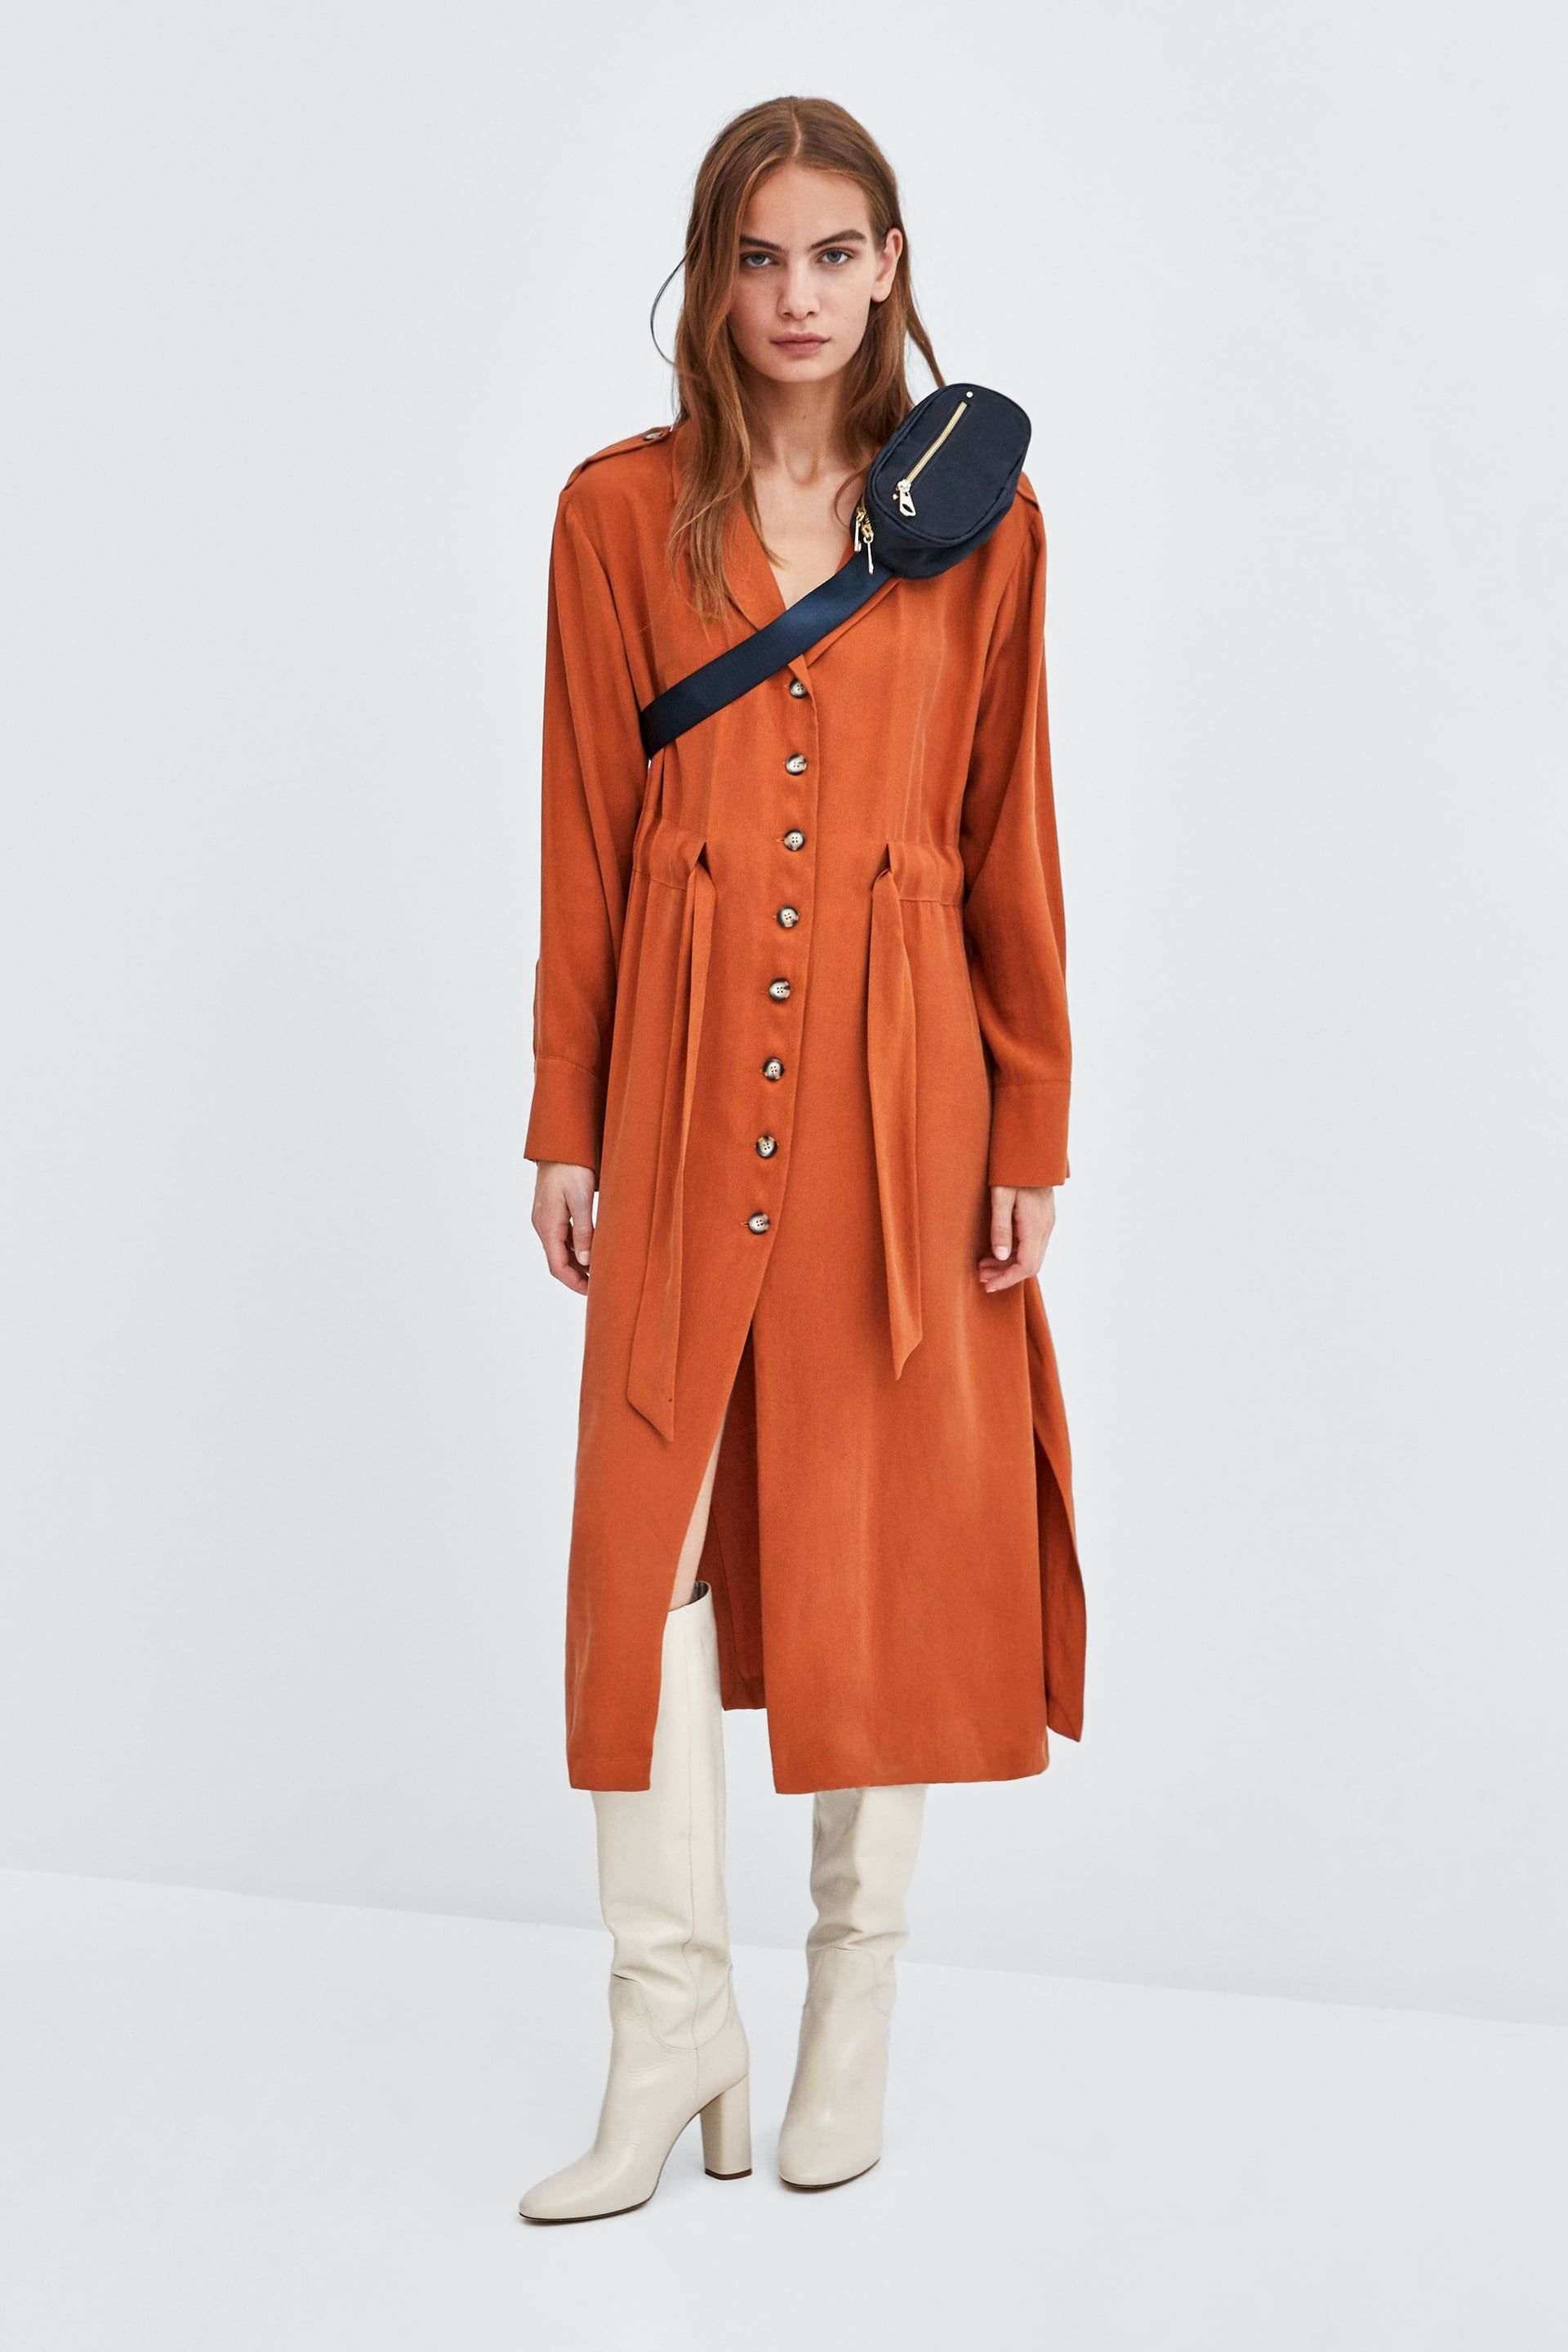 Image 1 Of Flowy Shirt Dress From Zara D R E S S M E In 2018